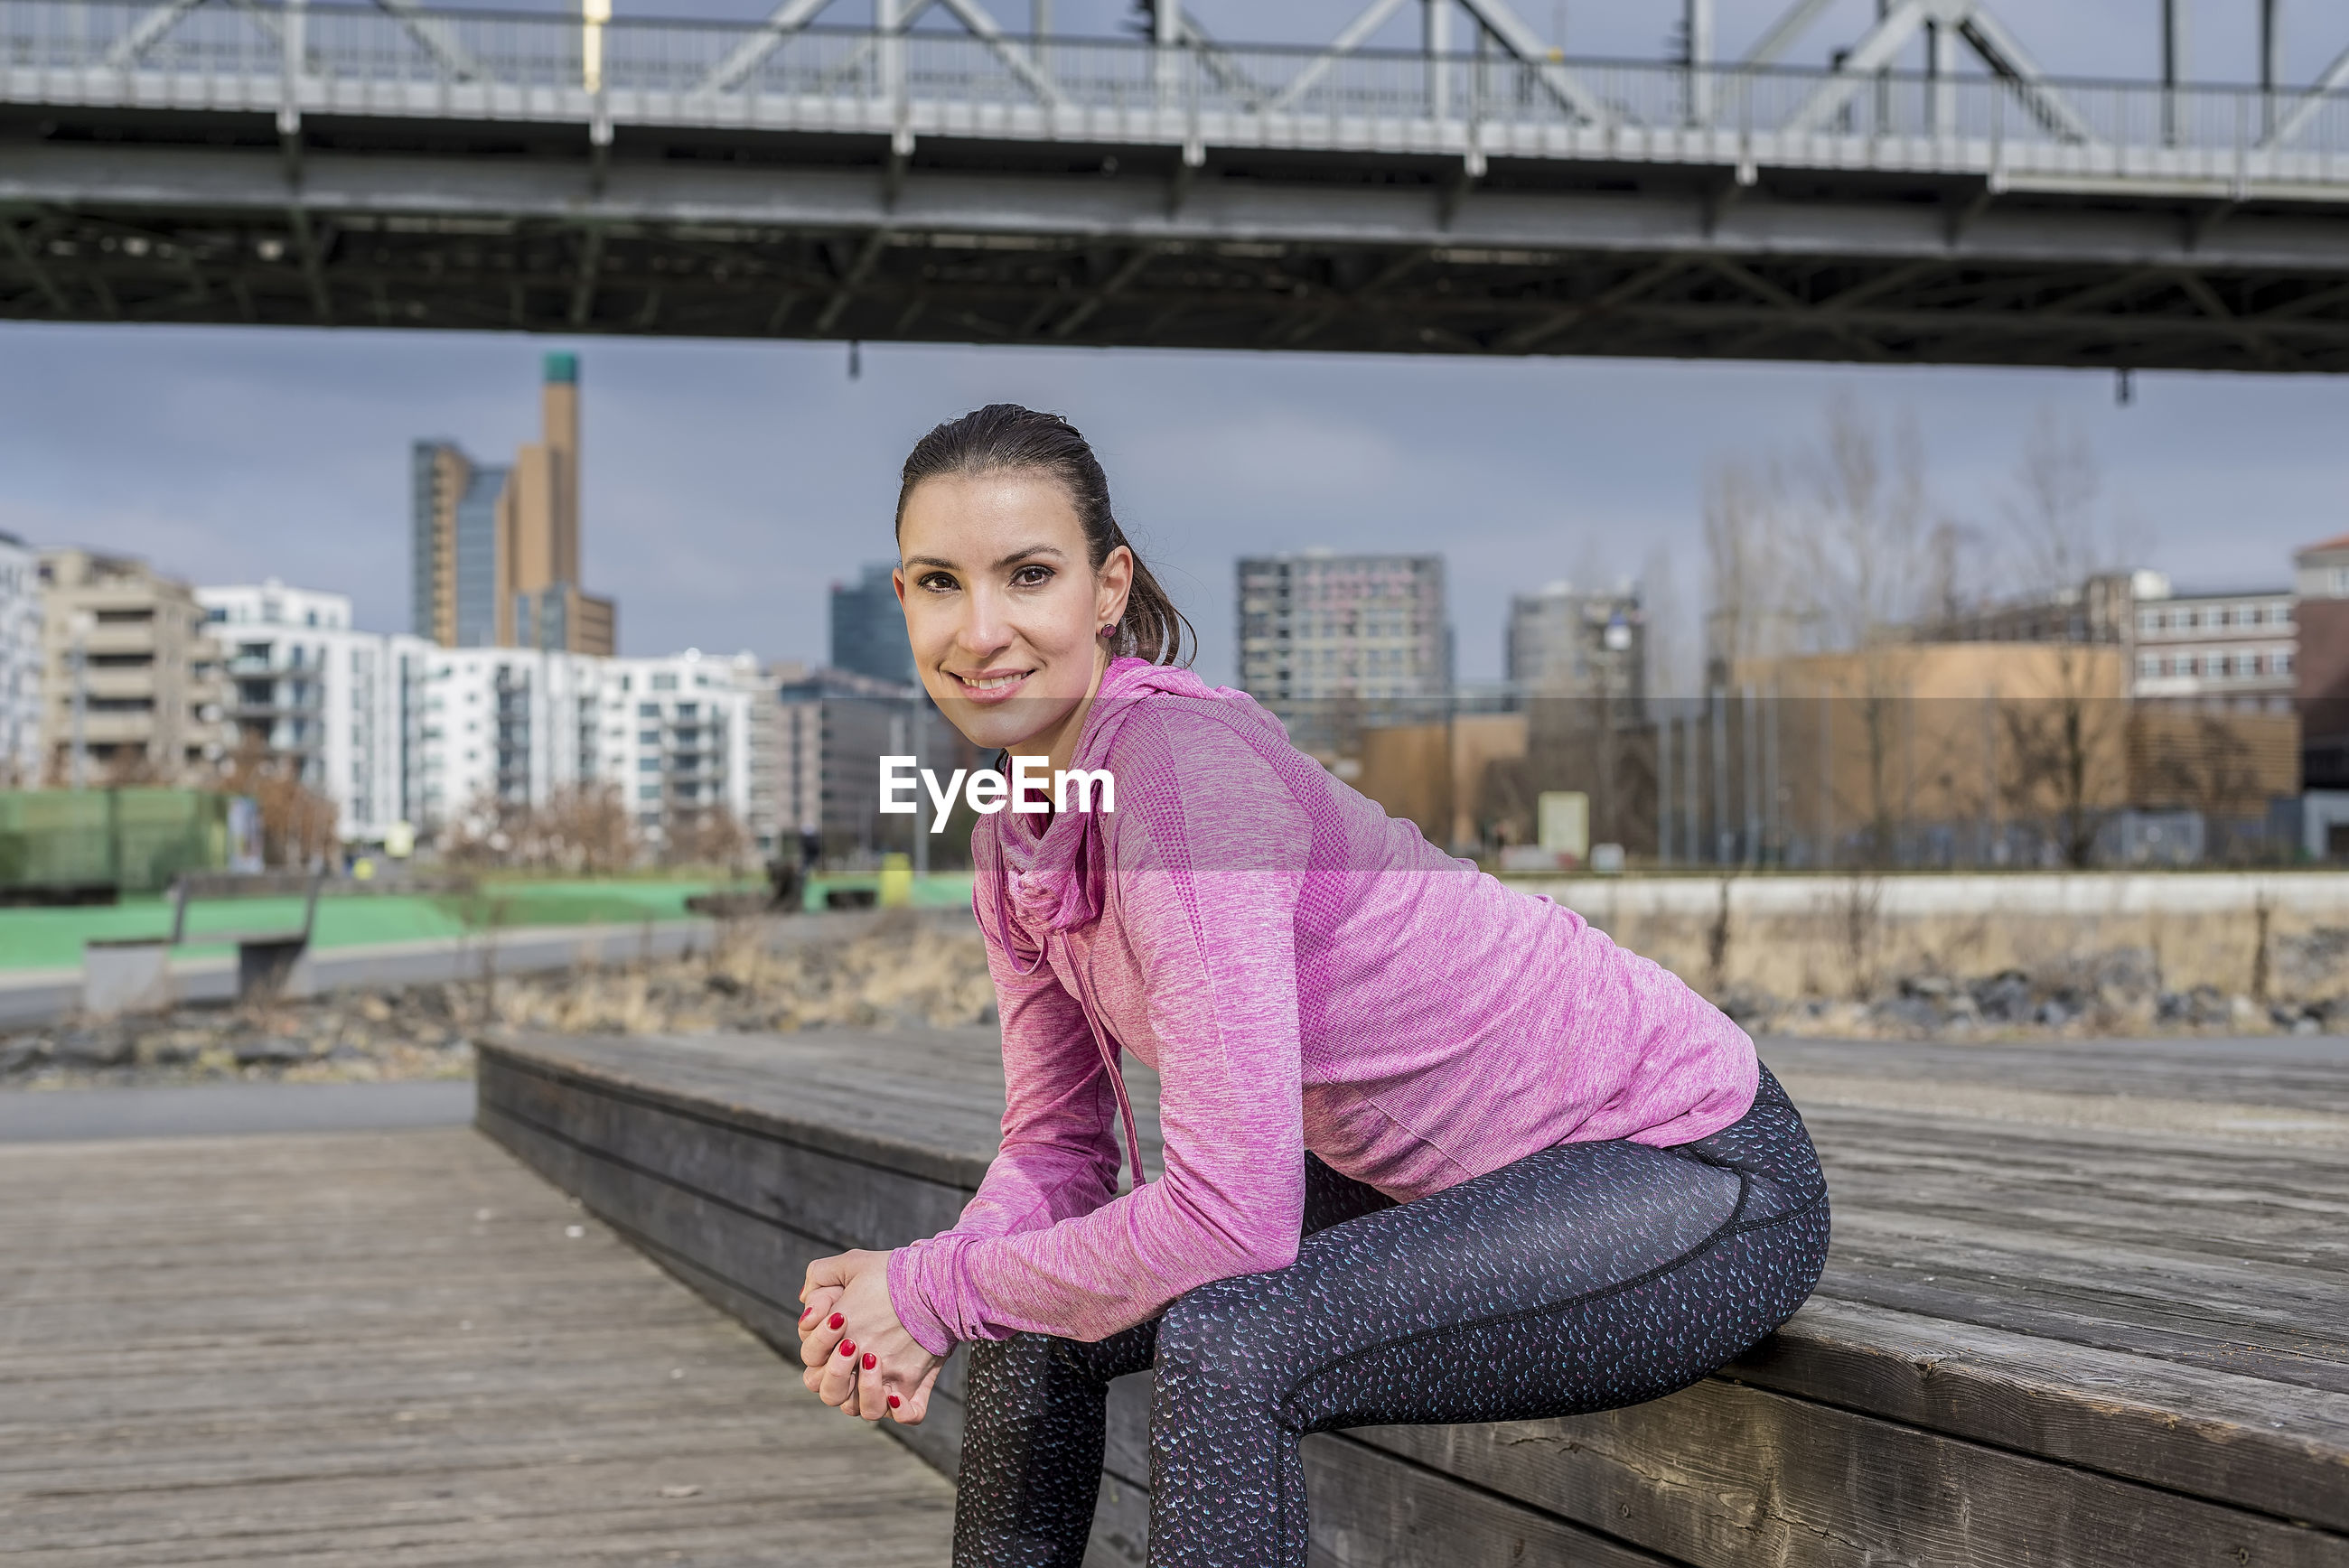 Portrait of smiling woman exercising in city